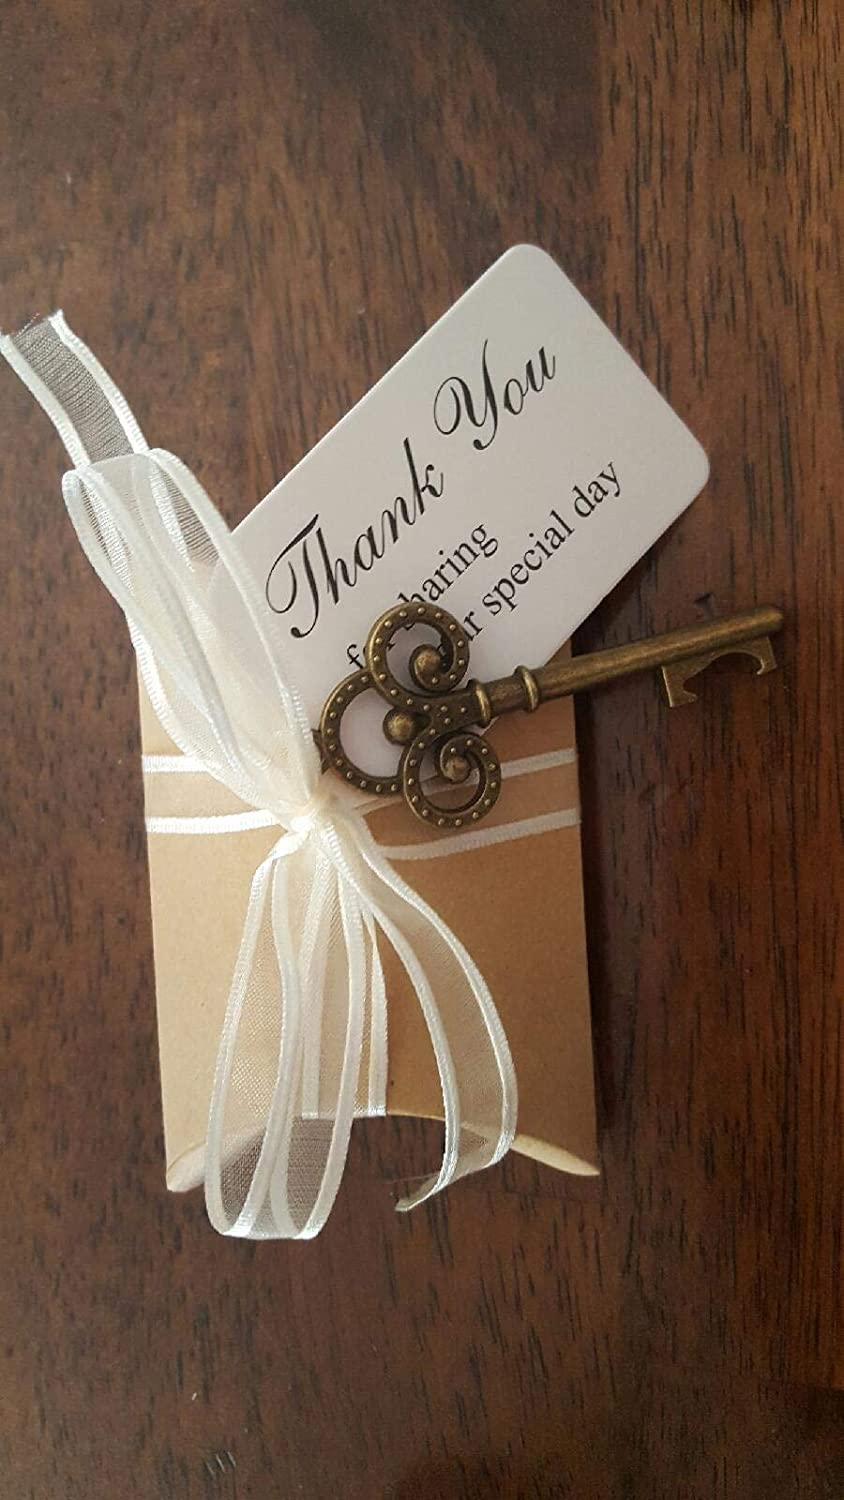 for Event and Wedding Party Favors for Guests Joy-Leo 3 Inch Rustic Vintage Bulk Skeleton Keys Bottle Opener with Kraft Paper Escort Card Tag /& Pillow Candy Box /& Vintage Jute Twine 24 Pack